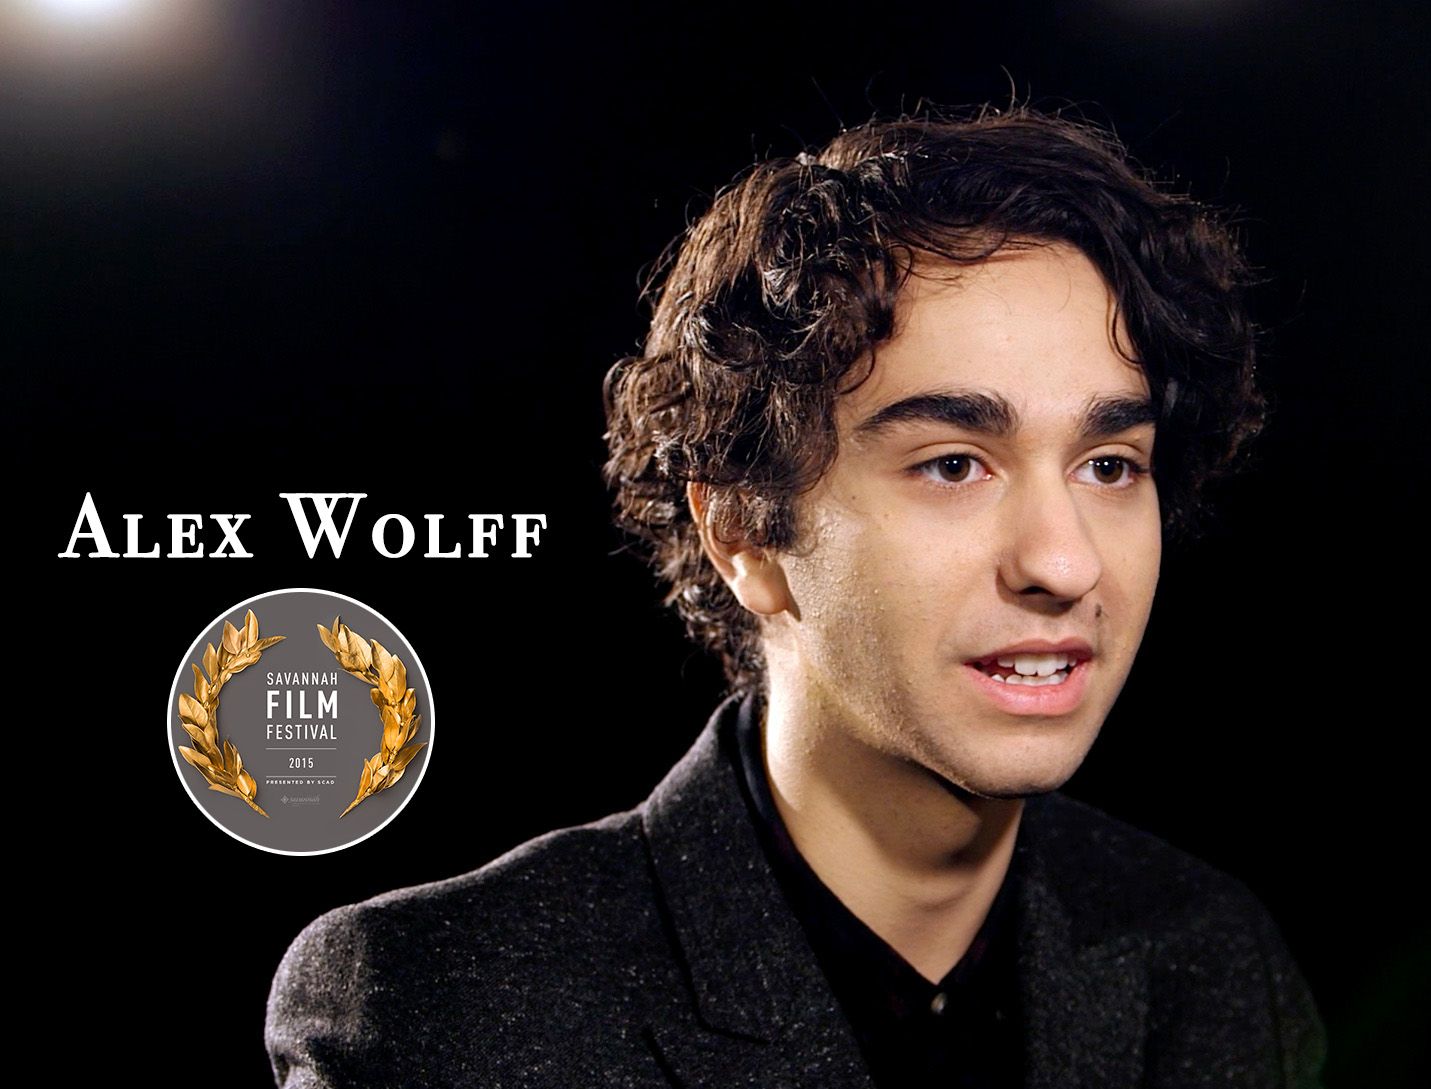 Alex Wolff at Savannah Film Festival Red Carpet